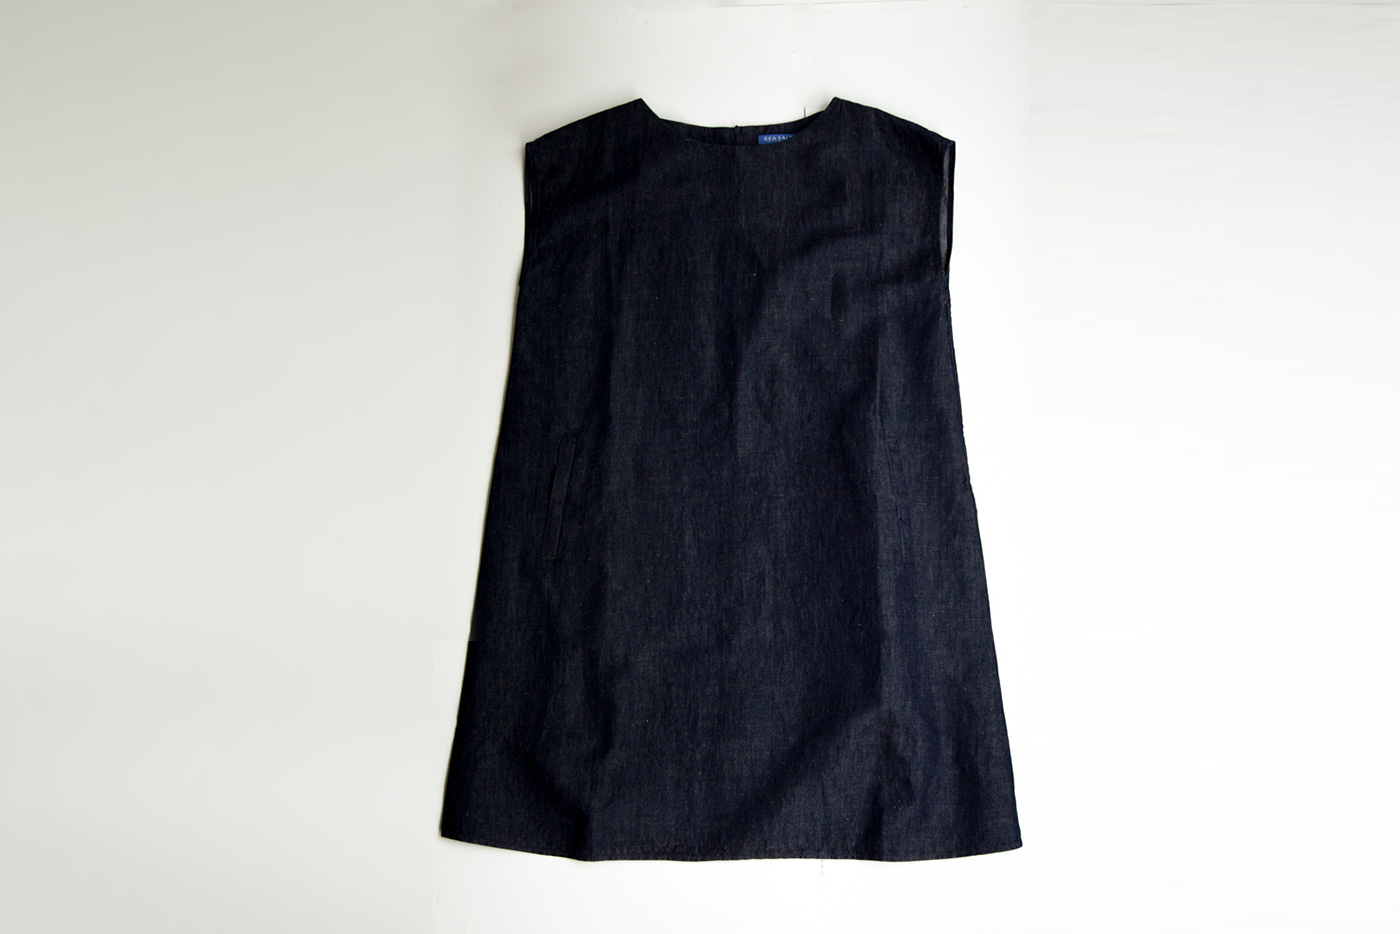 SEA SALT / SHIFT DRESS